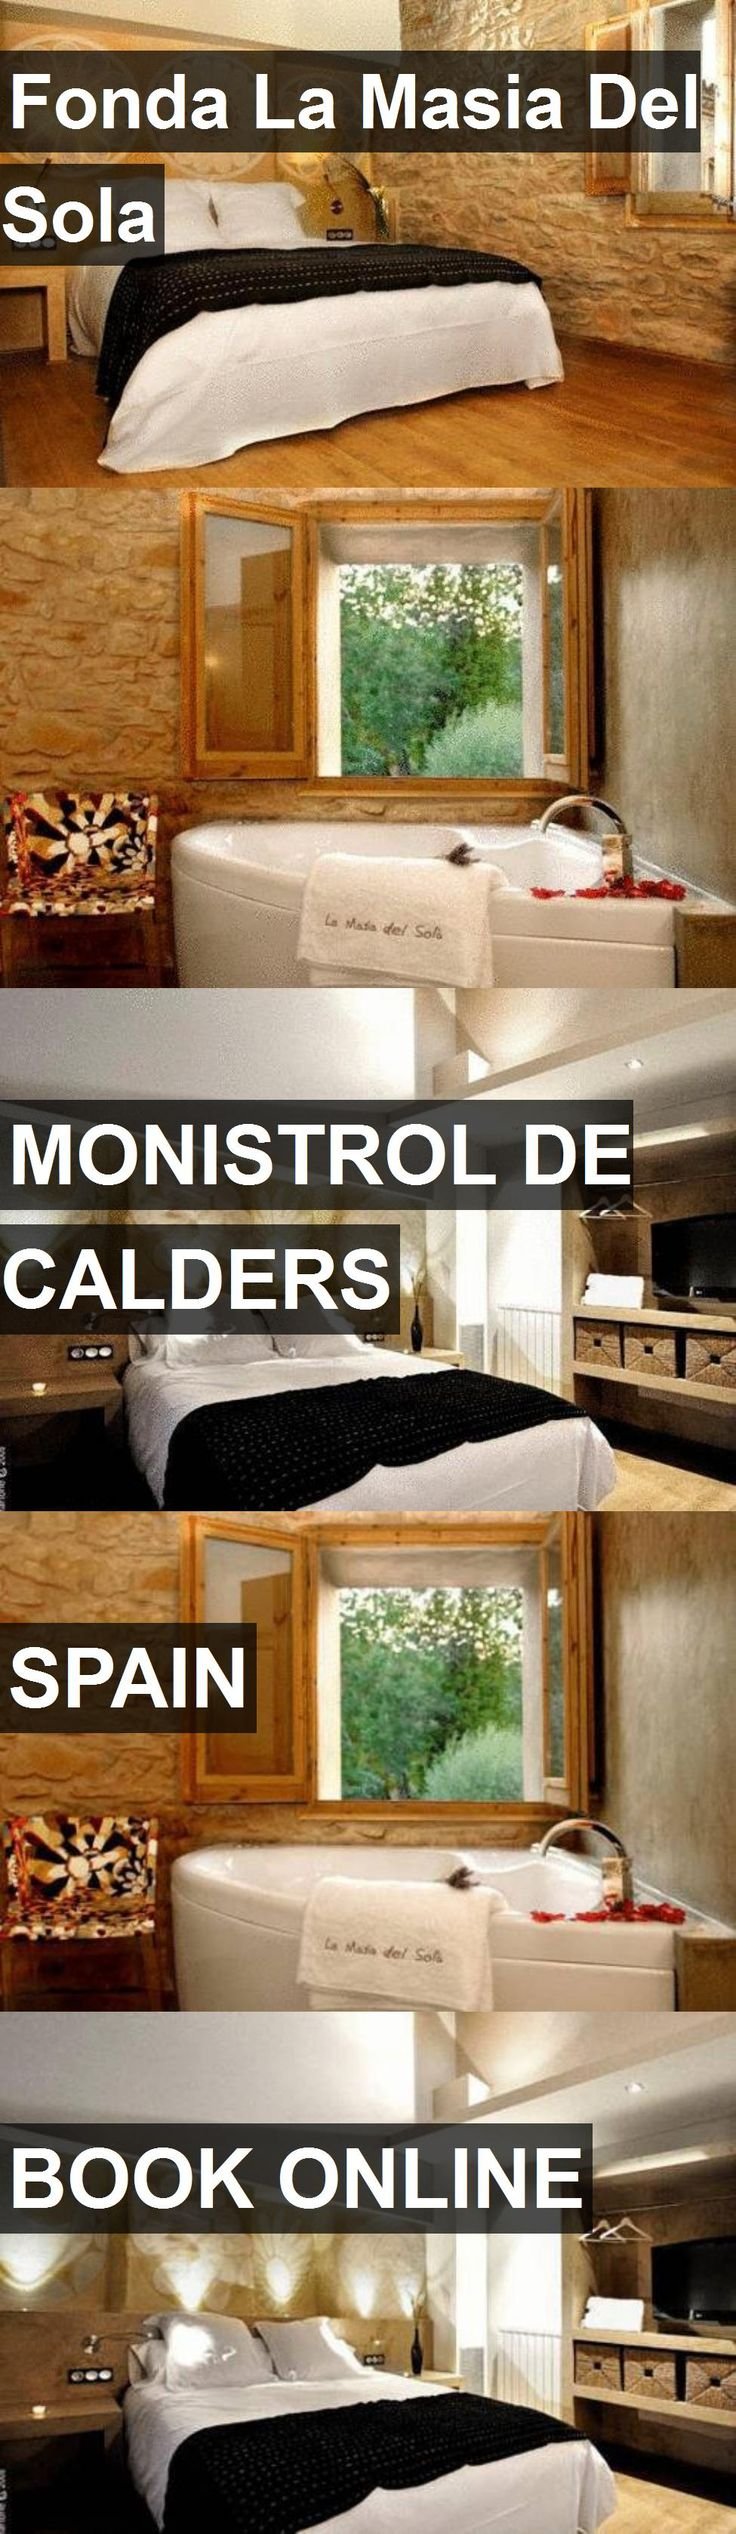 Hotel Fonda La Masia Del Sola in Monistrol de Calders, Spain. For more information, photos, reviews and best prices please follow the link. #Spain #MonistroldeCalders #travel #vacation #hotel